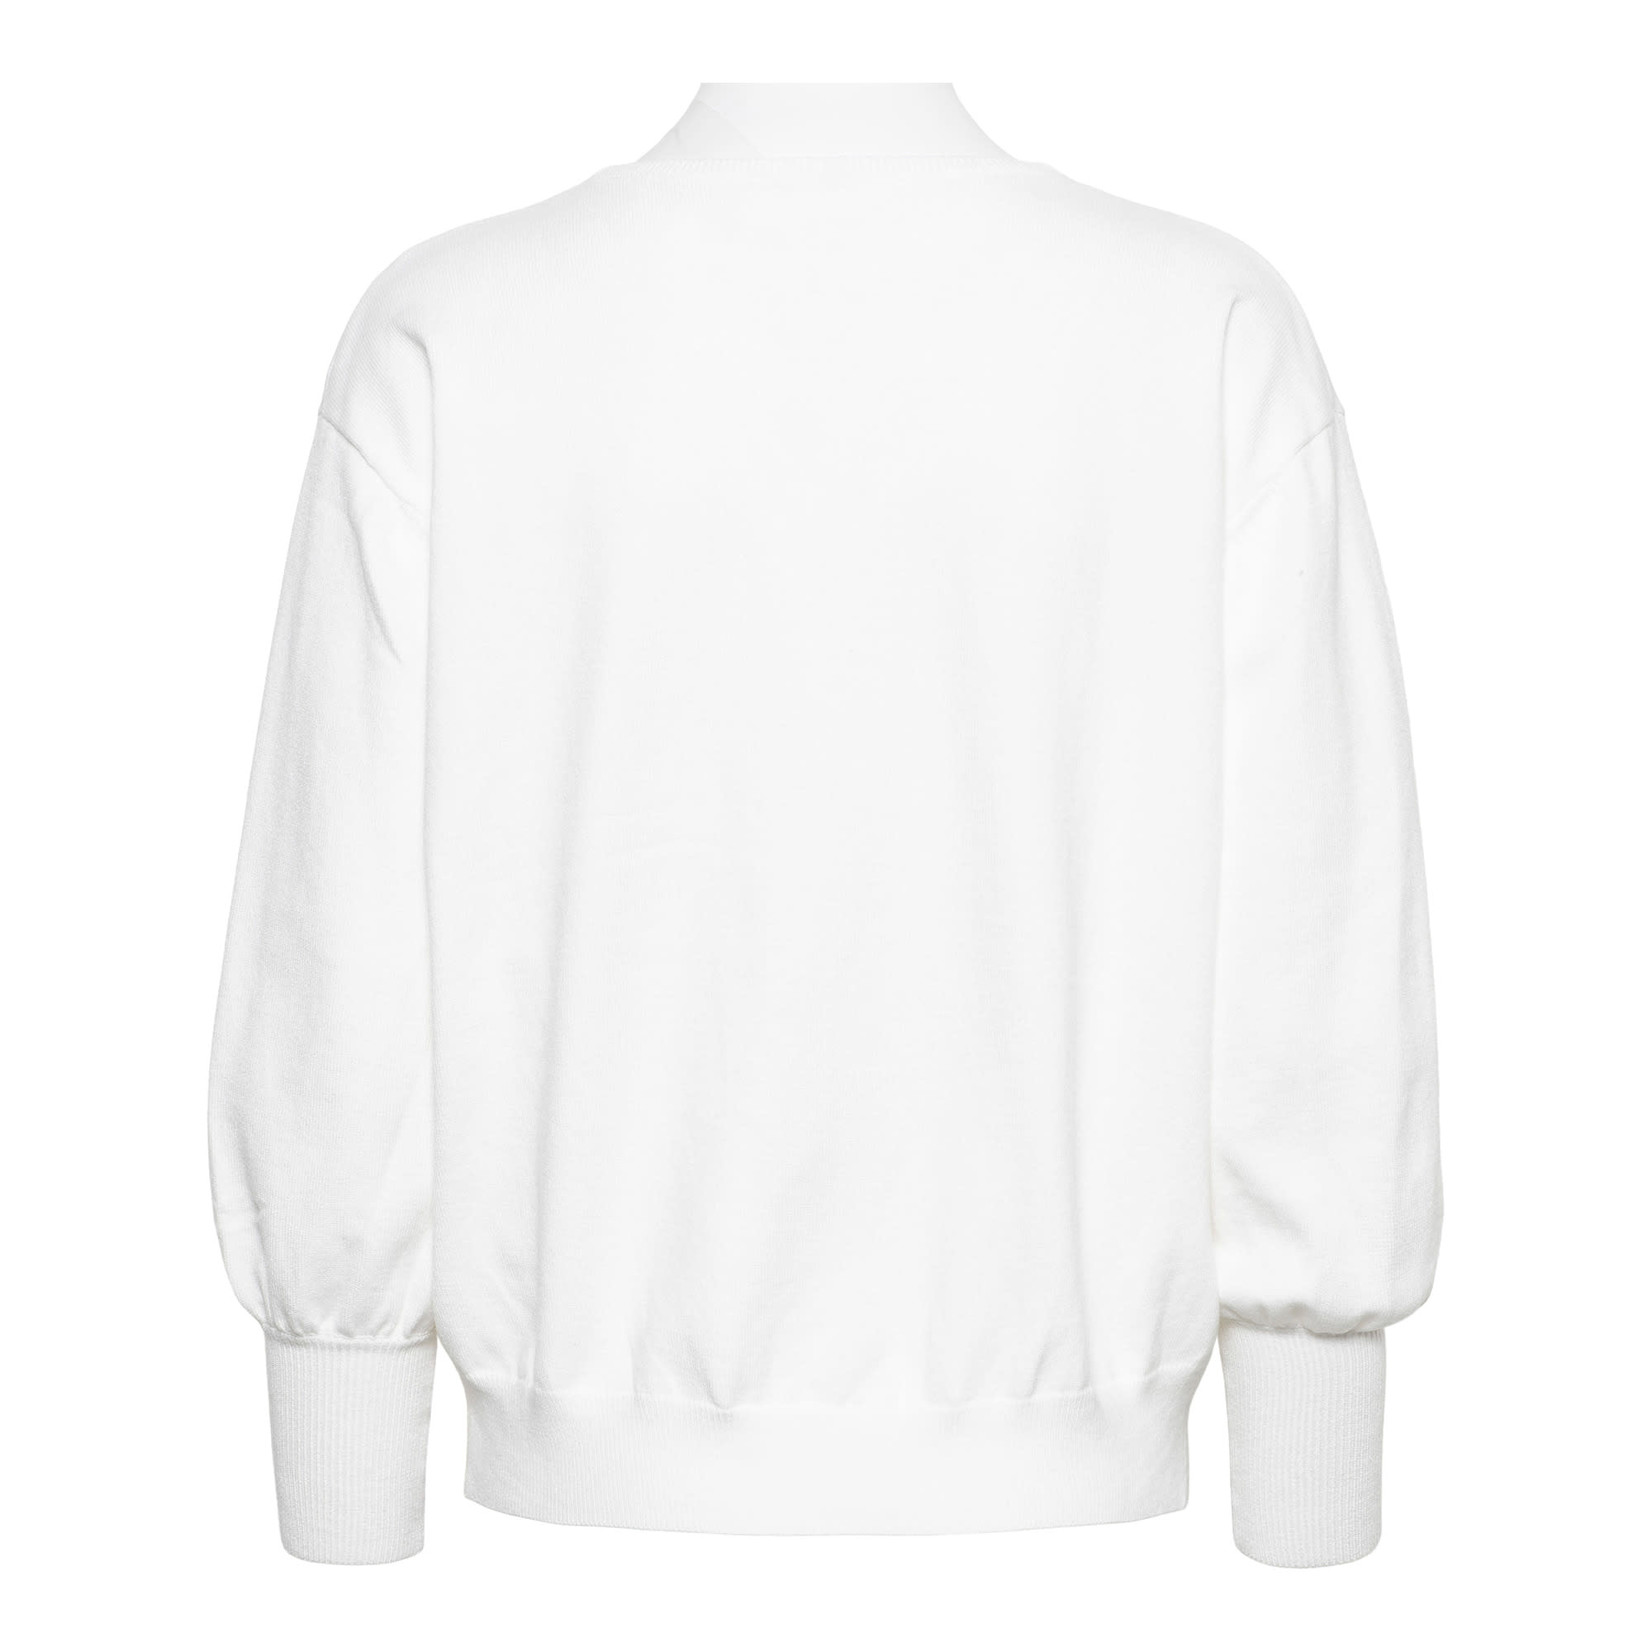 & Co &CO Woman Bloom Pullover Off White